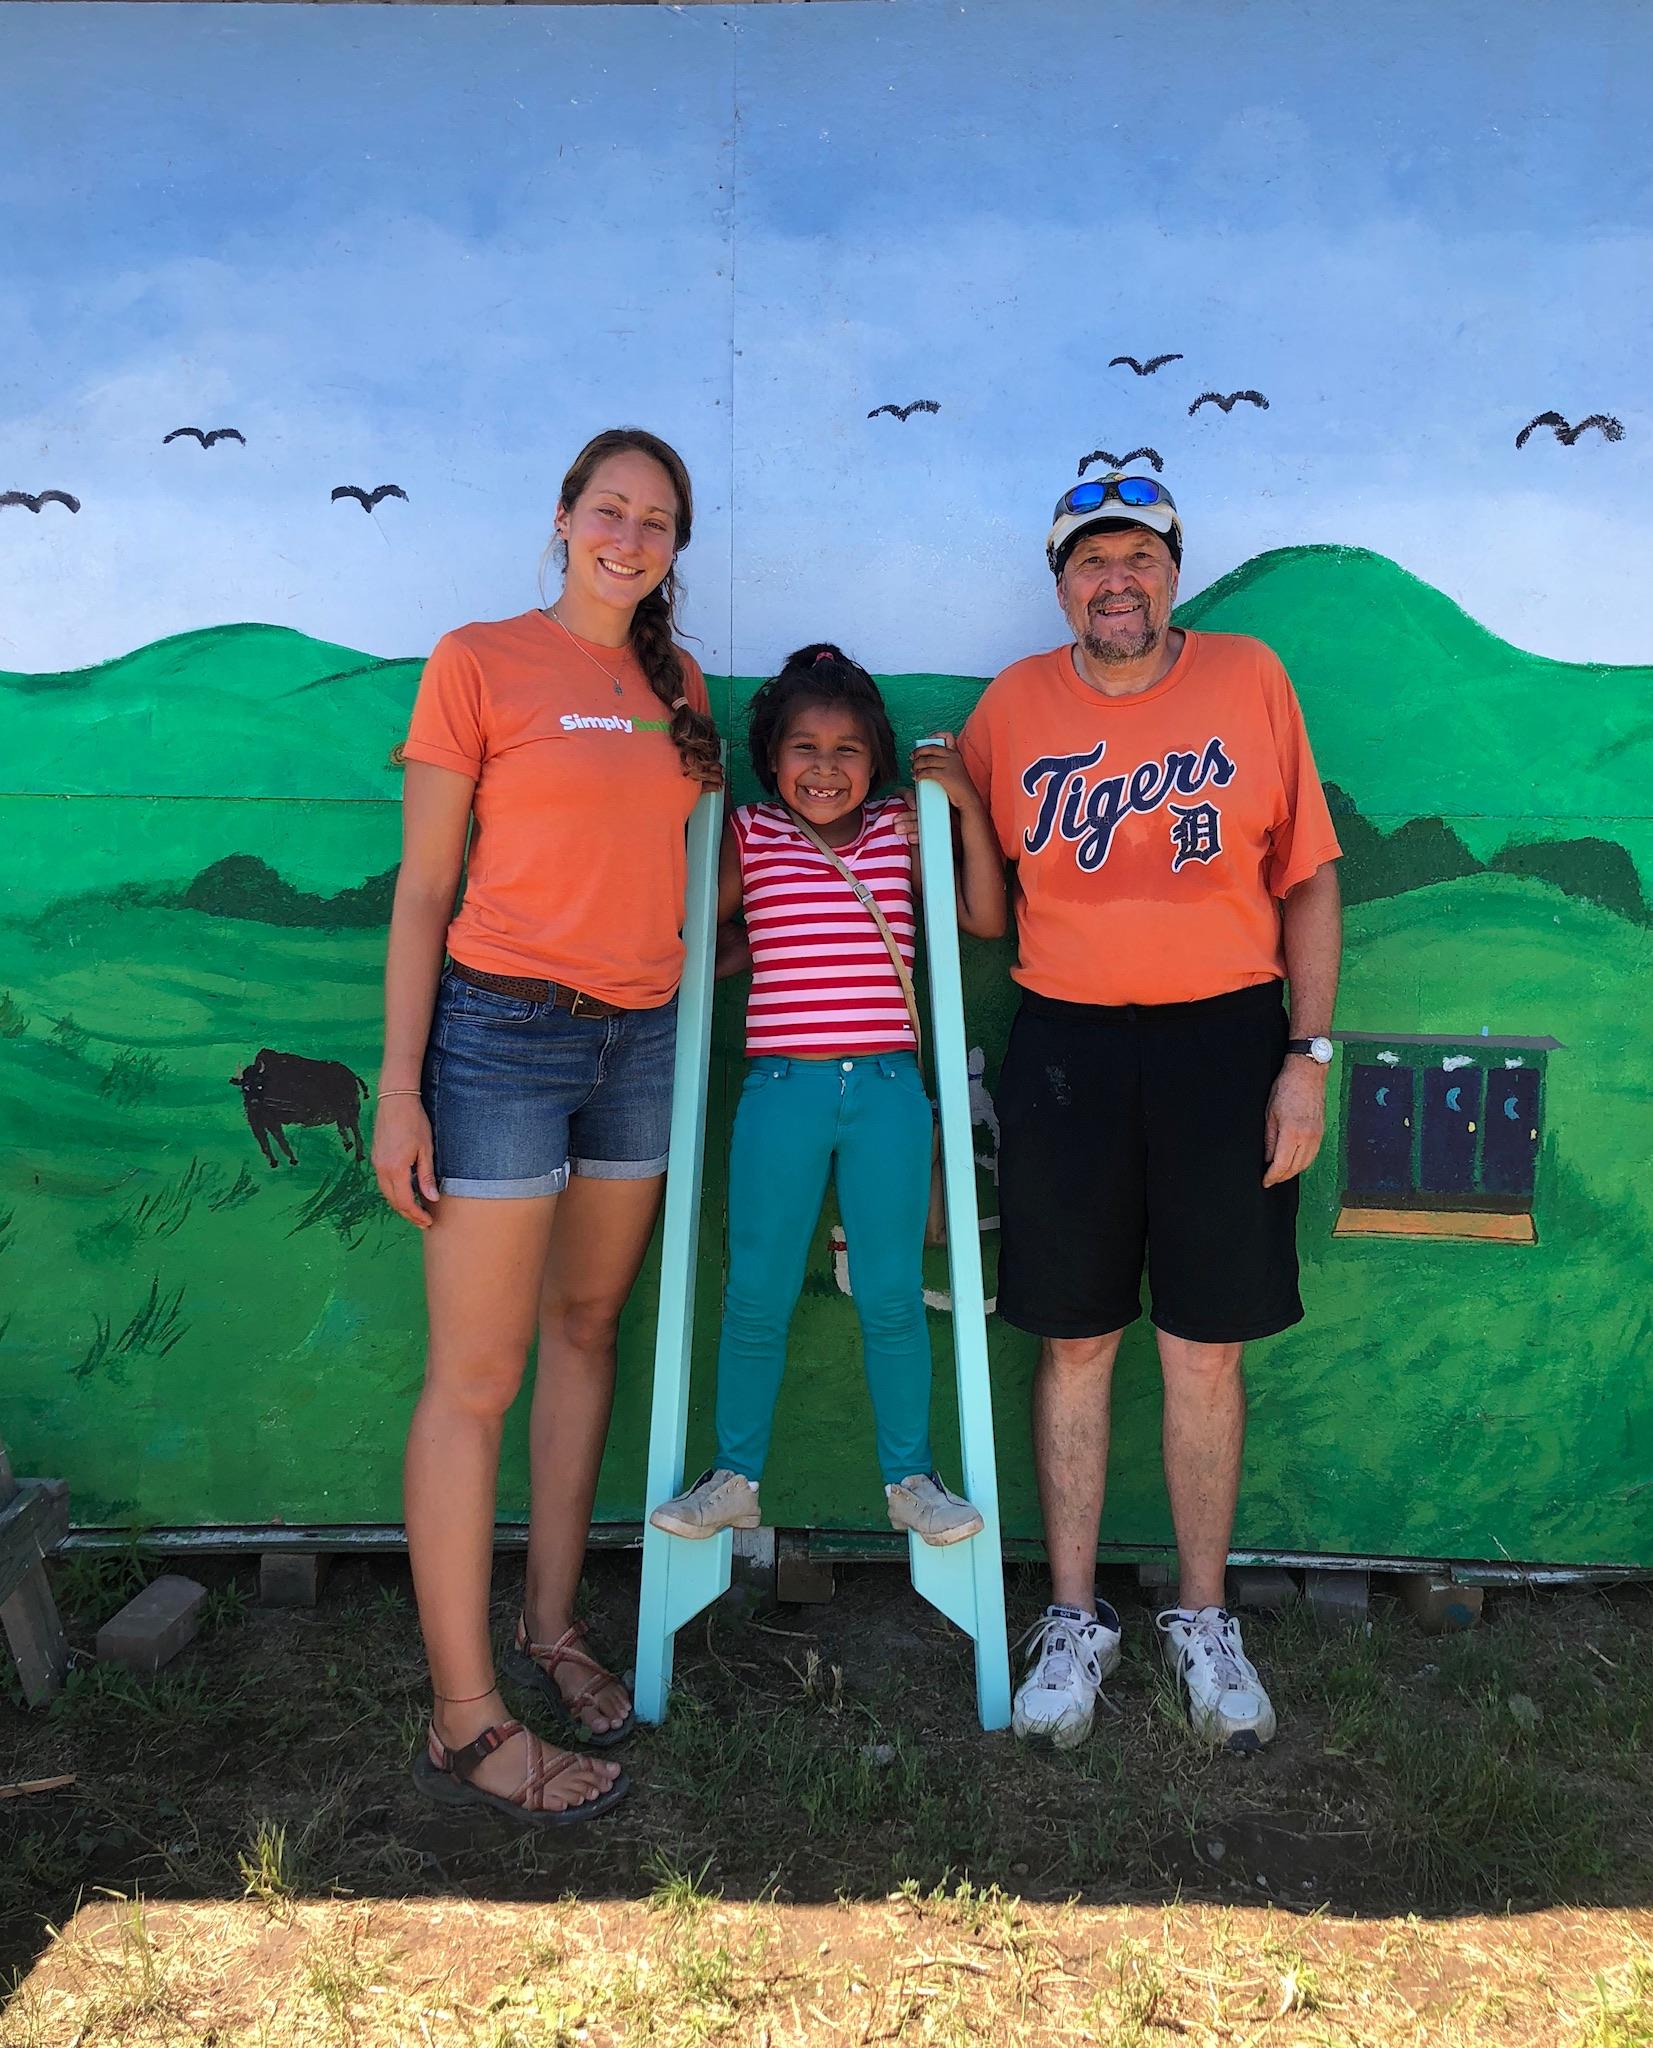 A little help from friends:  Simply Smiles Volunteer Coordinator Sam Steinmetz and her high school basketball coach Al Ciarlo, who has volunteered on the Cheyenne River Sioux Tribe Reservation, help their young friend balance on newly constructed stilts at Simply Smiles Summer Camp.